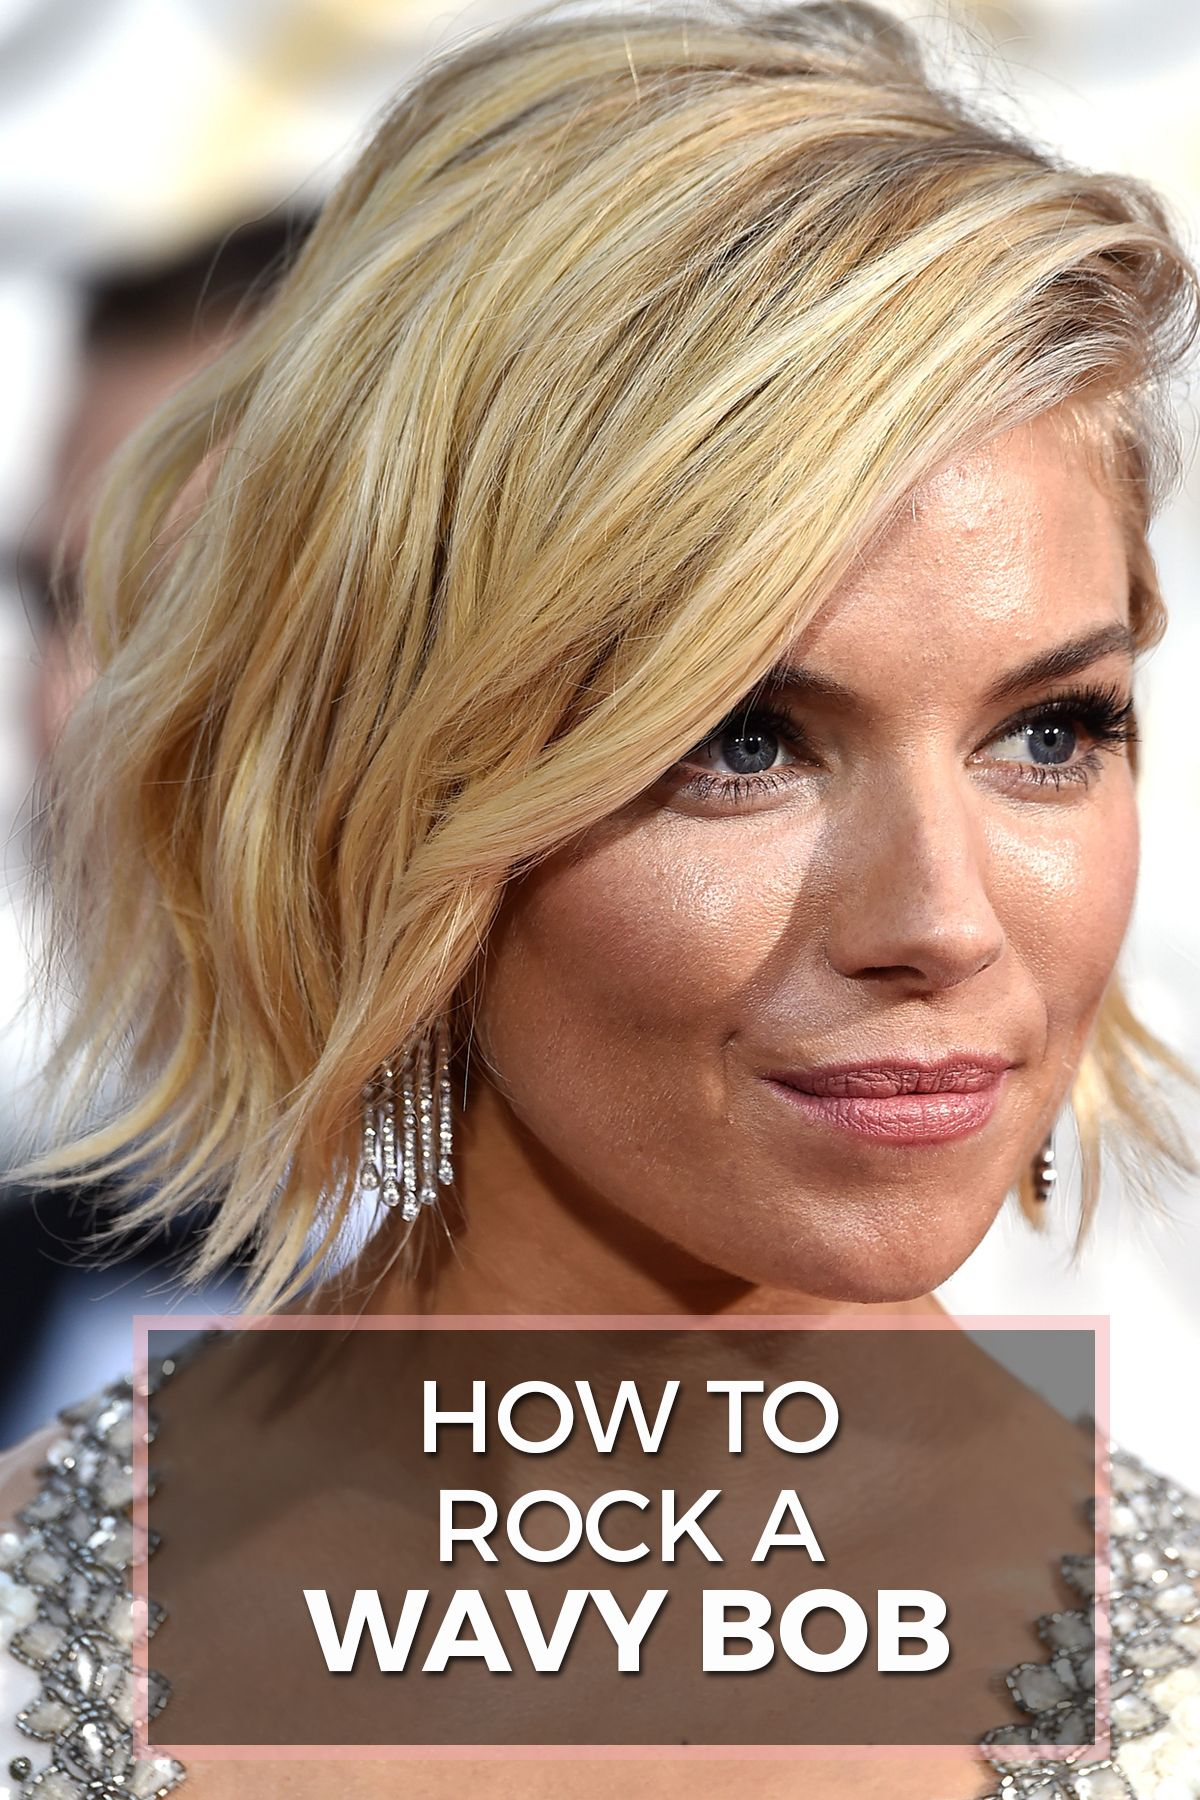 wavy bob hairstyles: how to rock this summer's 'it' cut | wavy